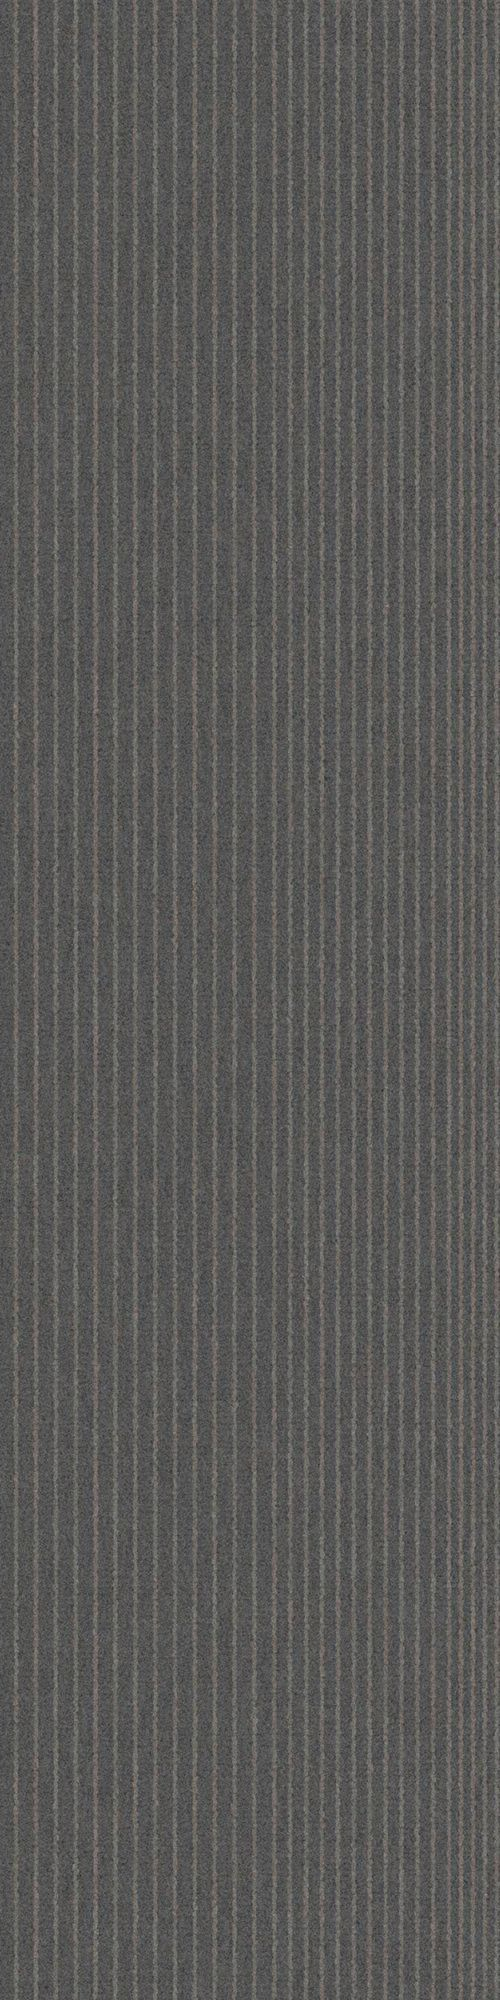 Interface carpet tile: B703 Color name: Sand Variant 4